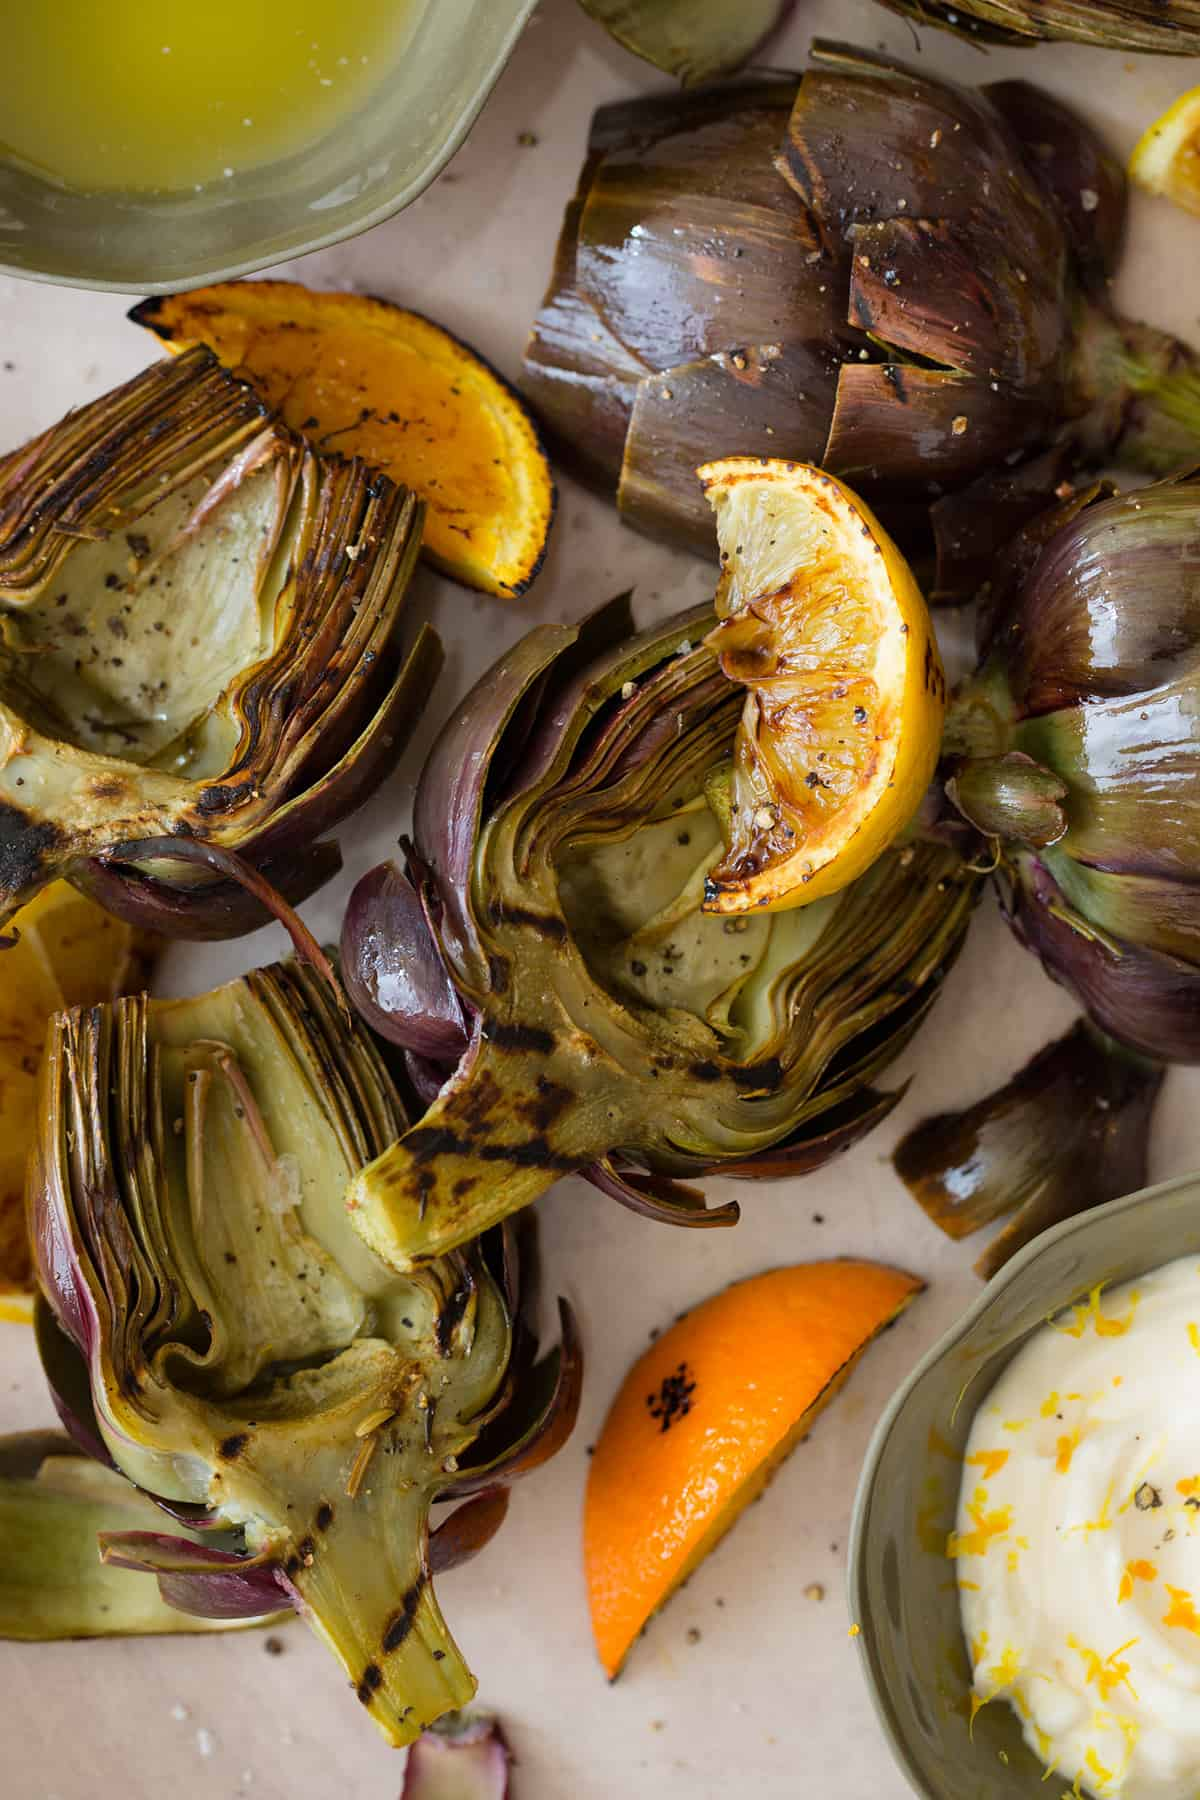 Grilled Artichokes | Appetizer or Side dish recipe | Spoon ...